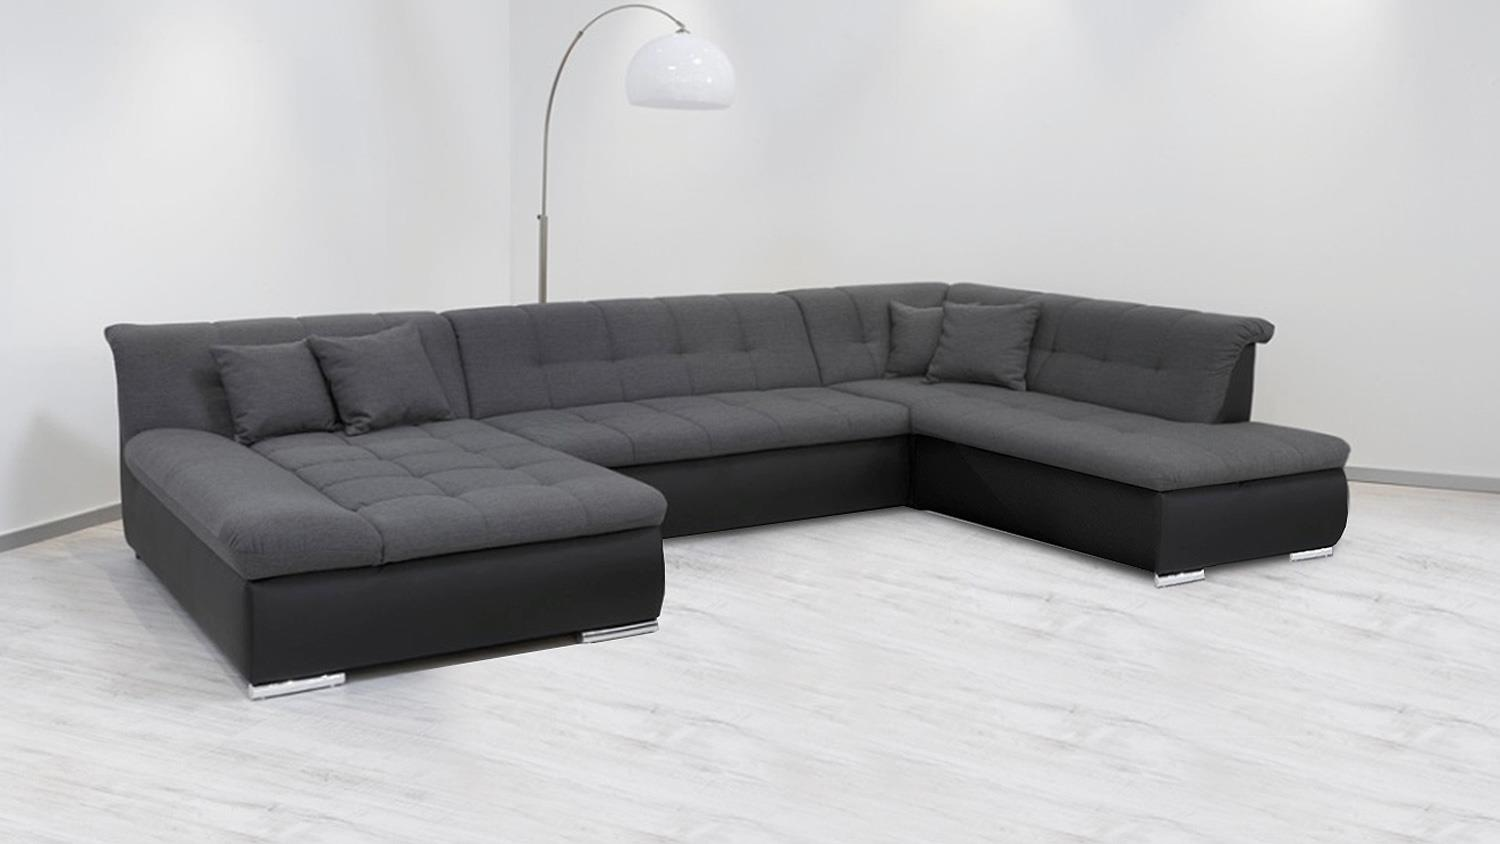 wohnlandschaft alabama sofa schwarz grau mit funktion. Black Bedroom Furniture Sets. Home Design Ideas